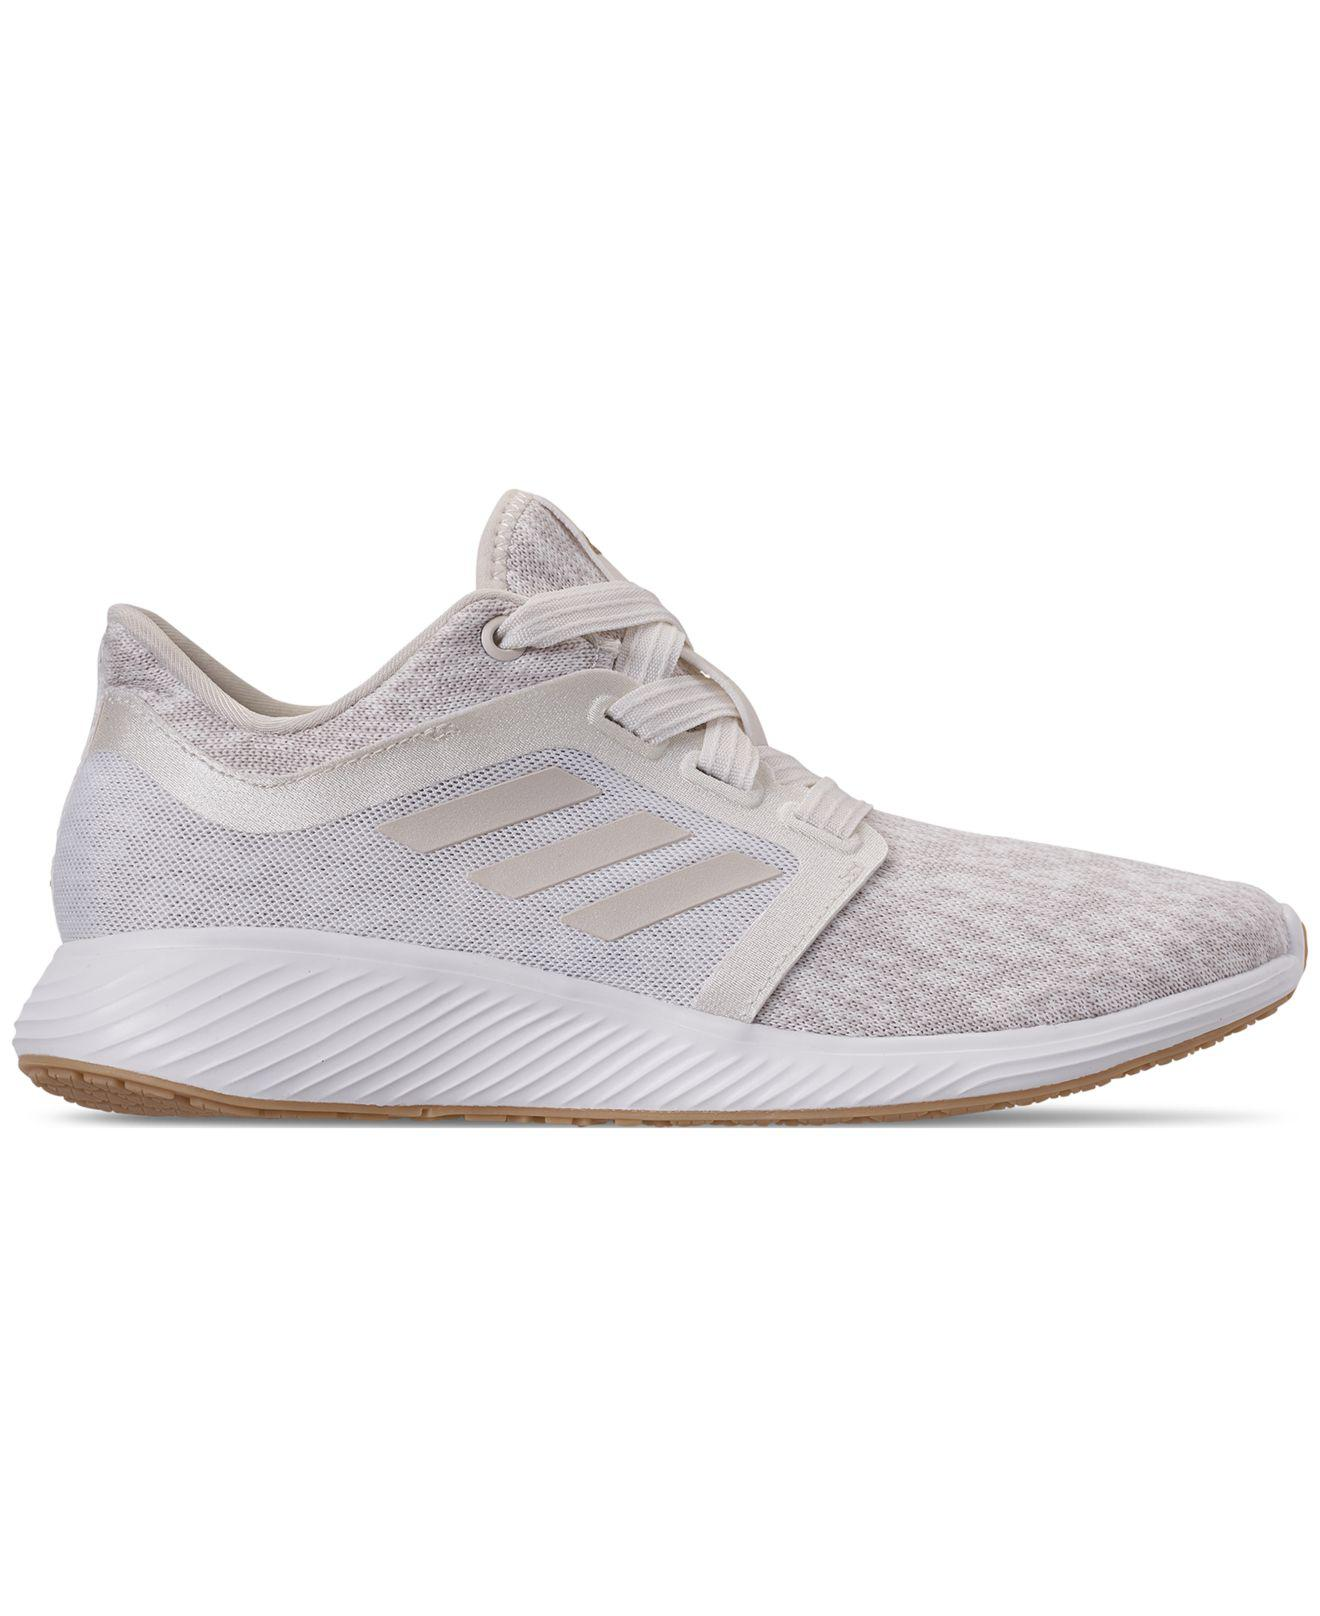 99b42c4a4909 Lyst - adidas Edge Lux Casual Sneakers From Finish Line in White